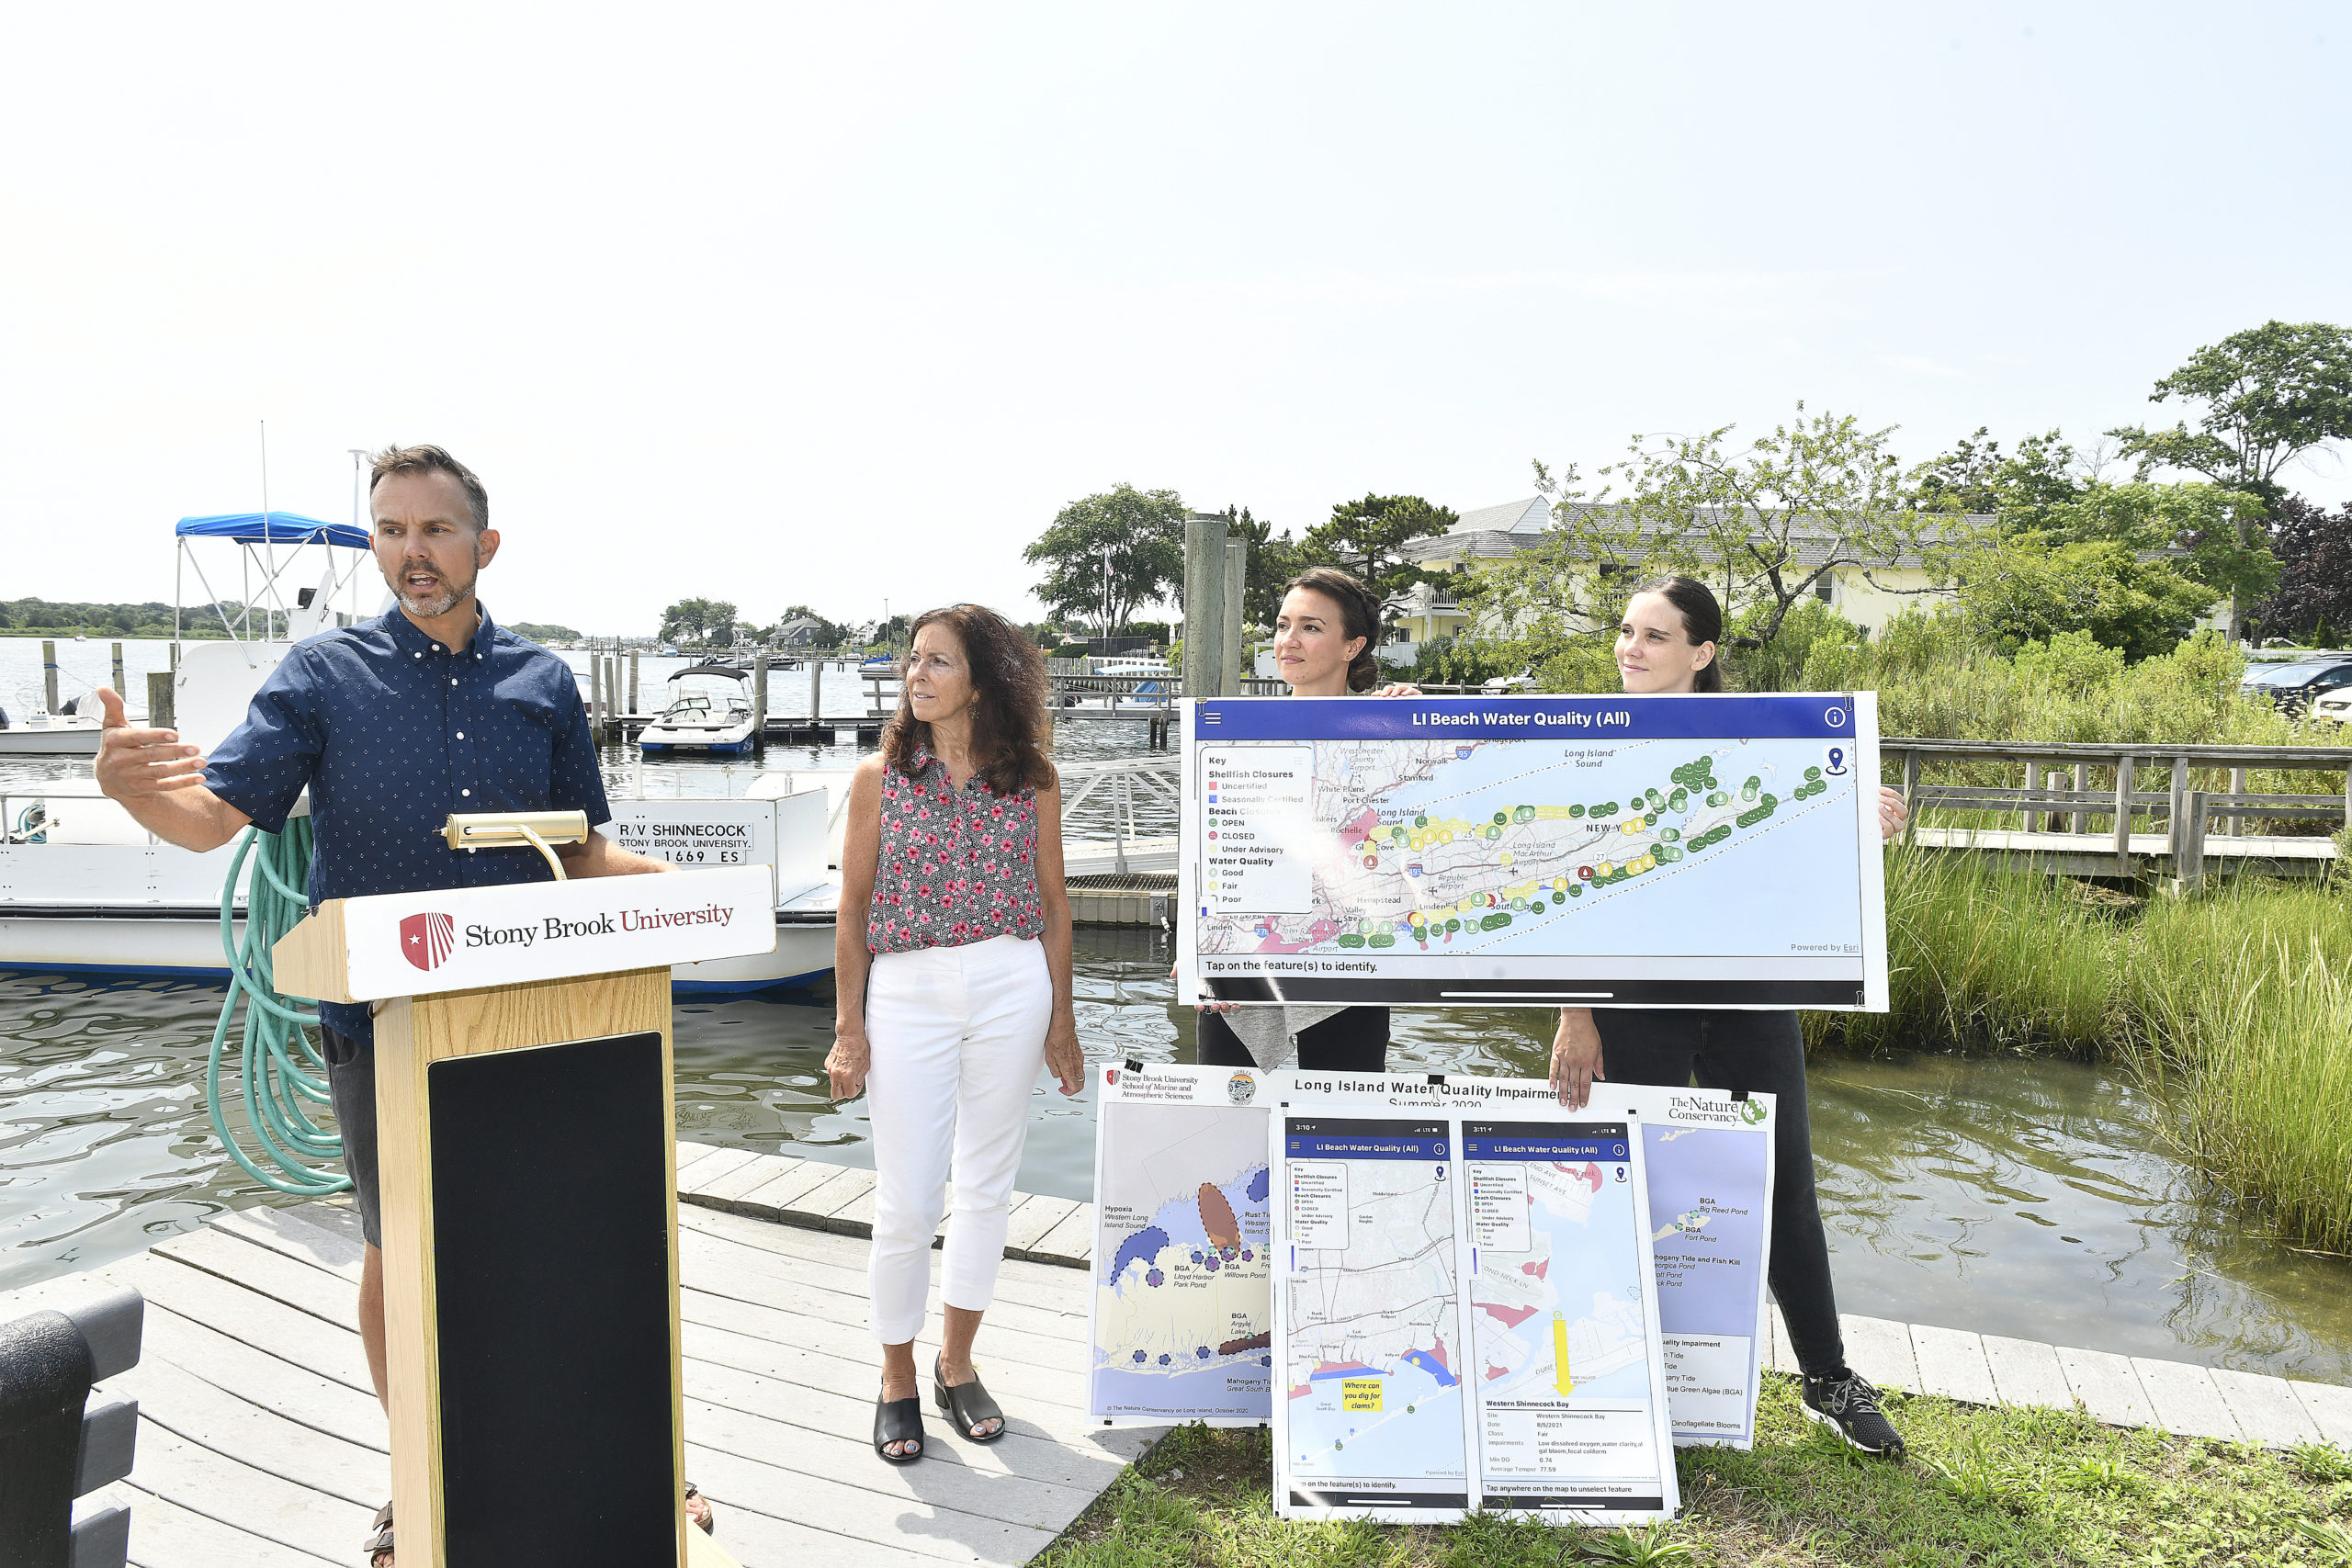 Christopher Gobler, Professor of Marine Sciences at Stony Brook University introduces the Long Island Beach and Water Quality App developed by Stony Brook University's School of Marine and Atmospheric Sciences (SoMAS).  DANA SHAW